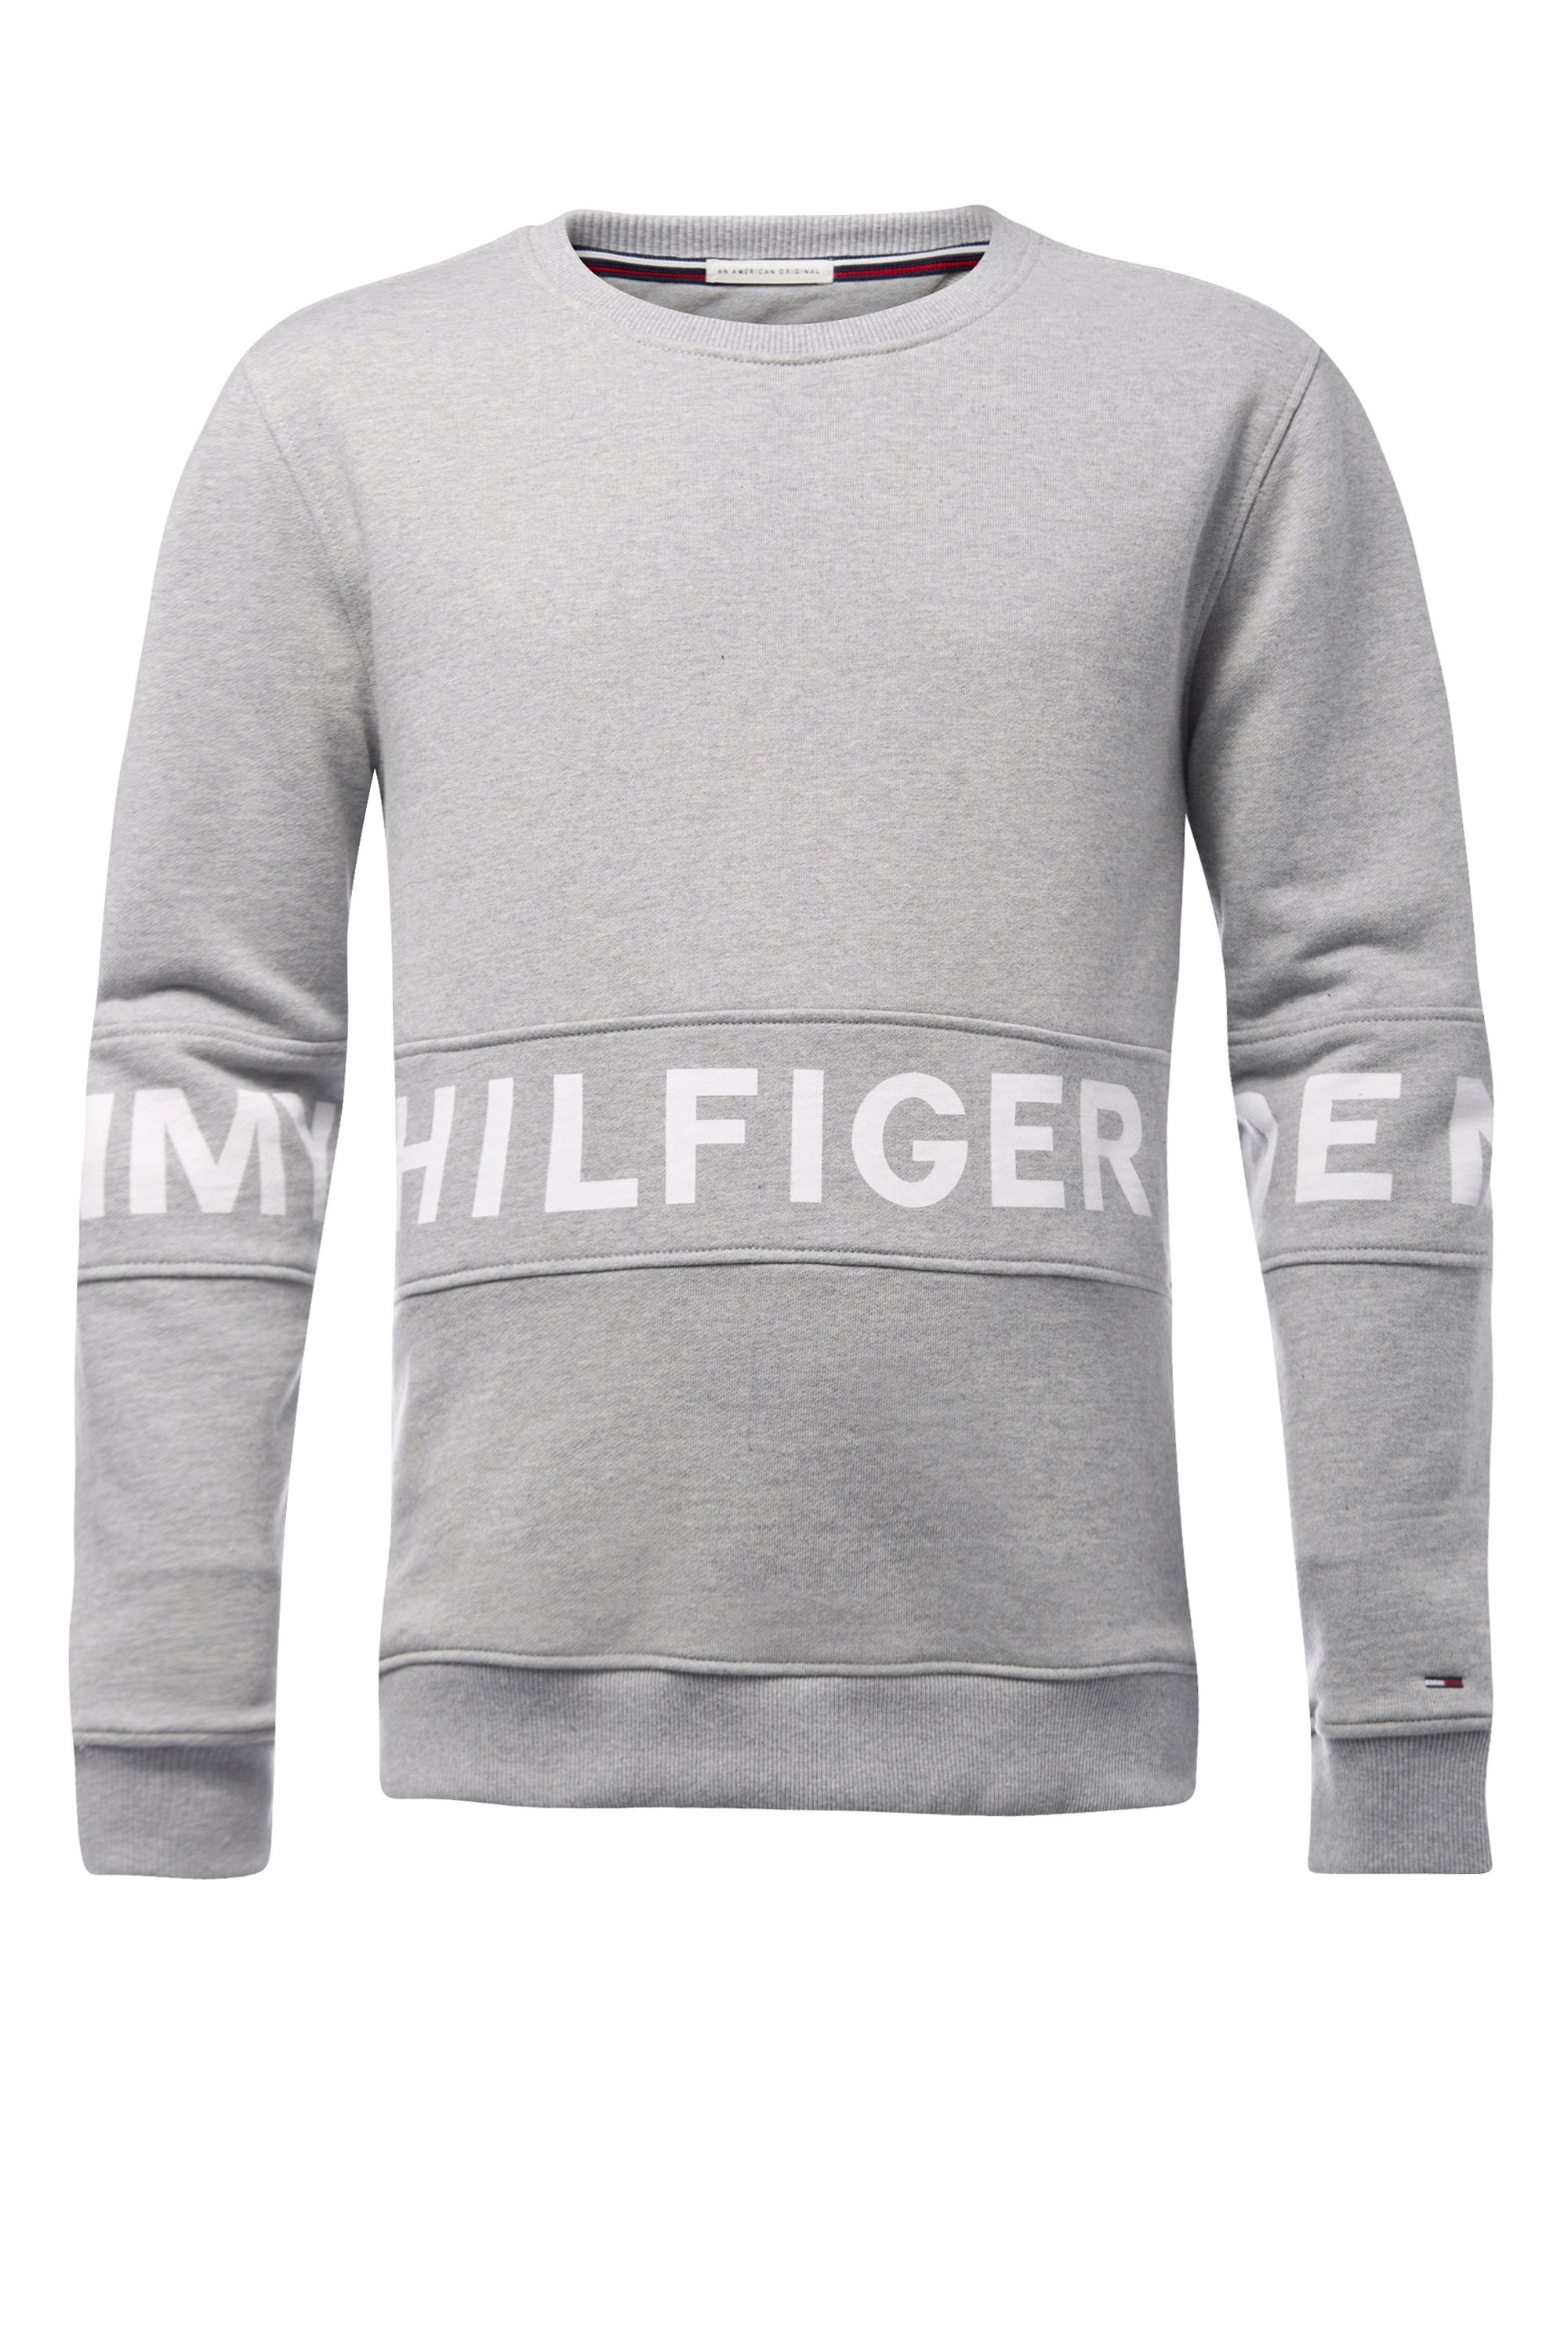 Men's Tommy Hilfiger basic logo sweatshirt, Light Grey